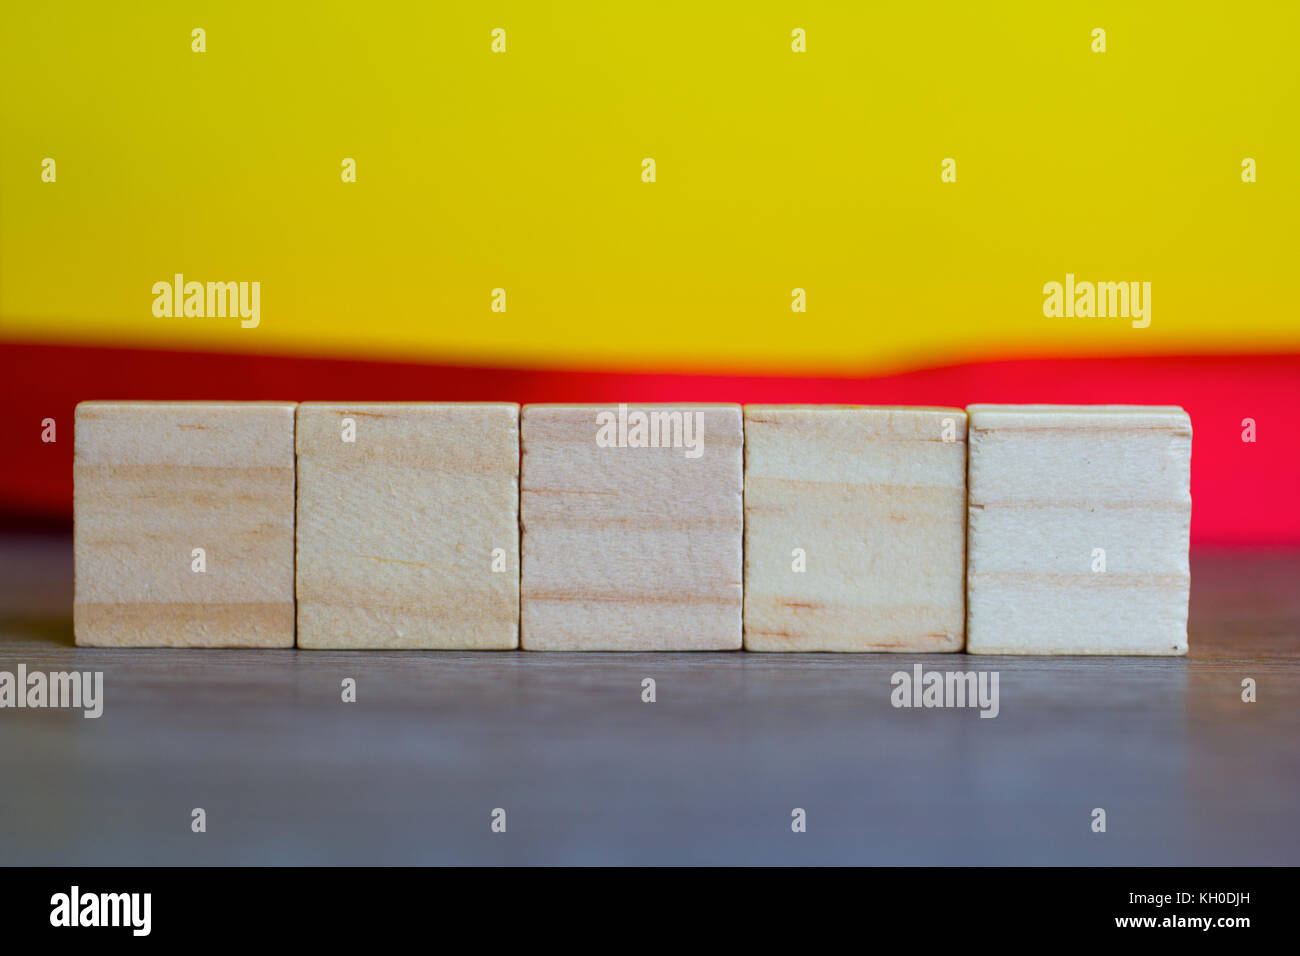 Five Empty Wood Cubes against yellow background - Stock Image